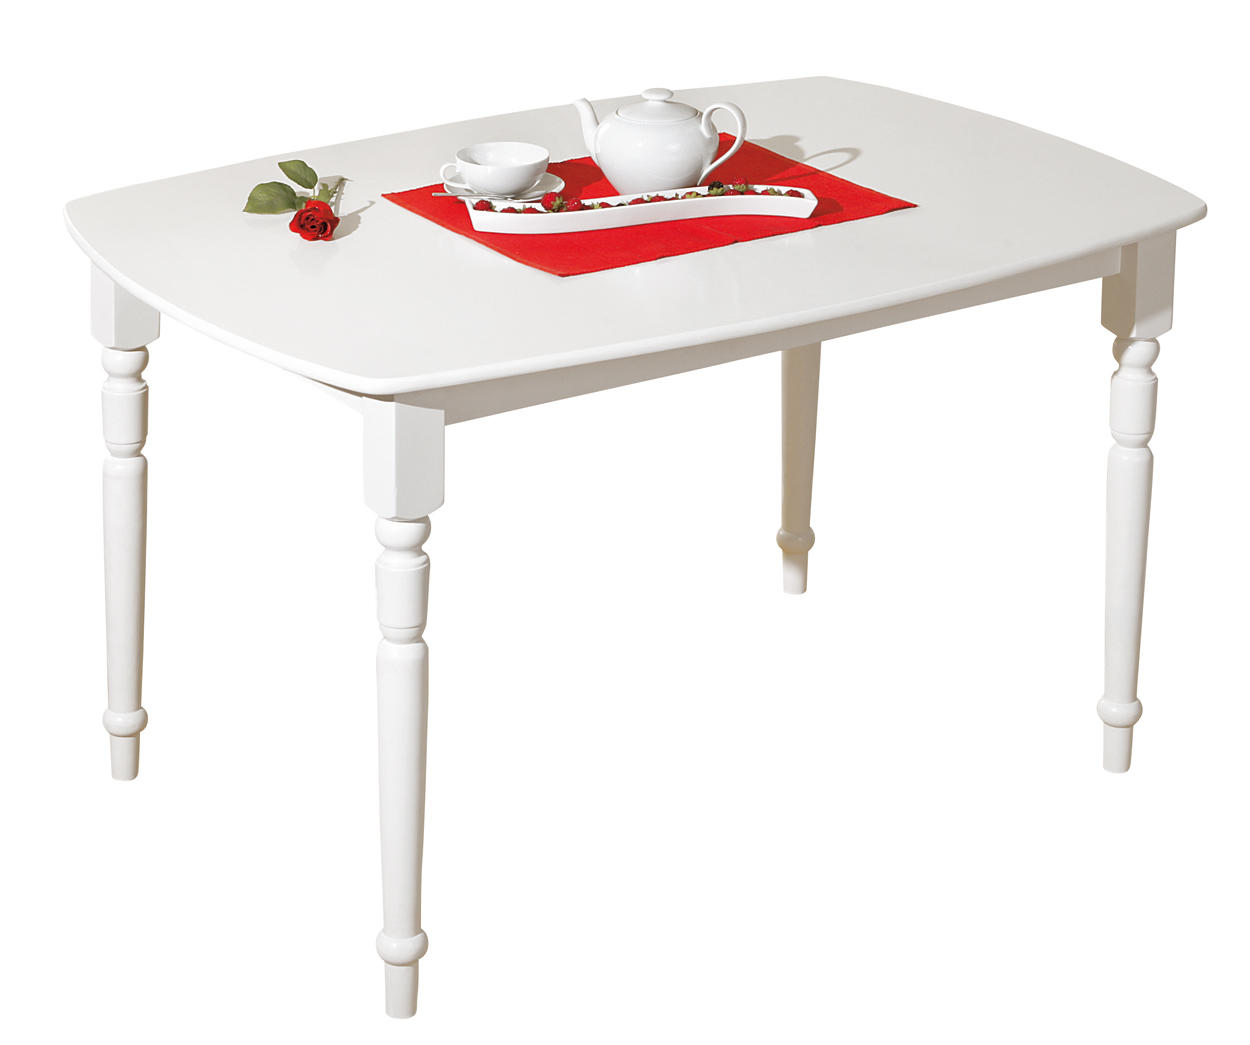 table de cuisine classique blanche table de repas. Black Bedroom Furniture Sets. Home Design Ideas